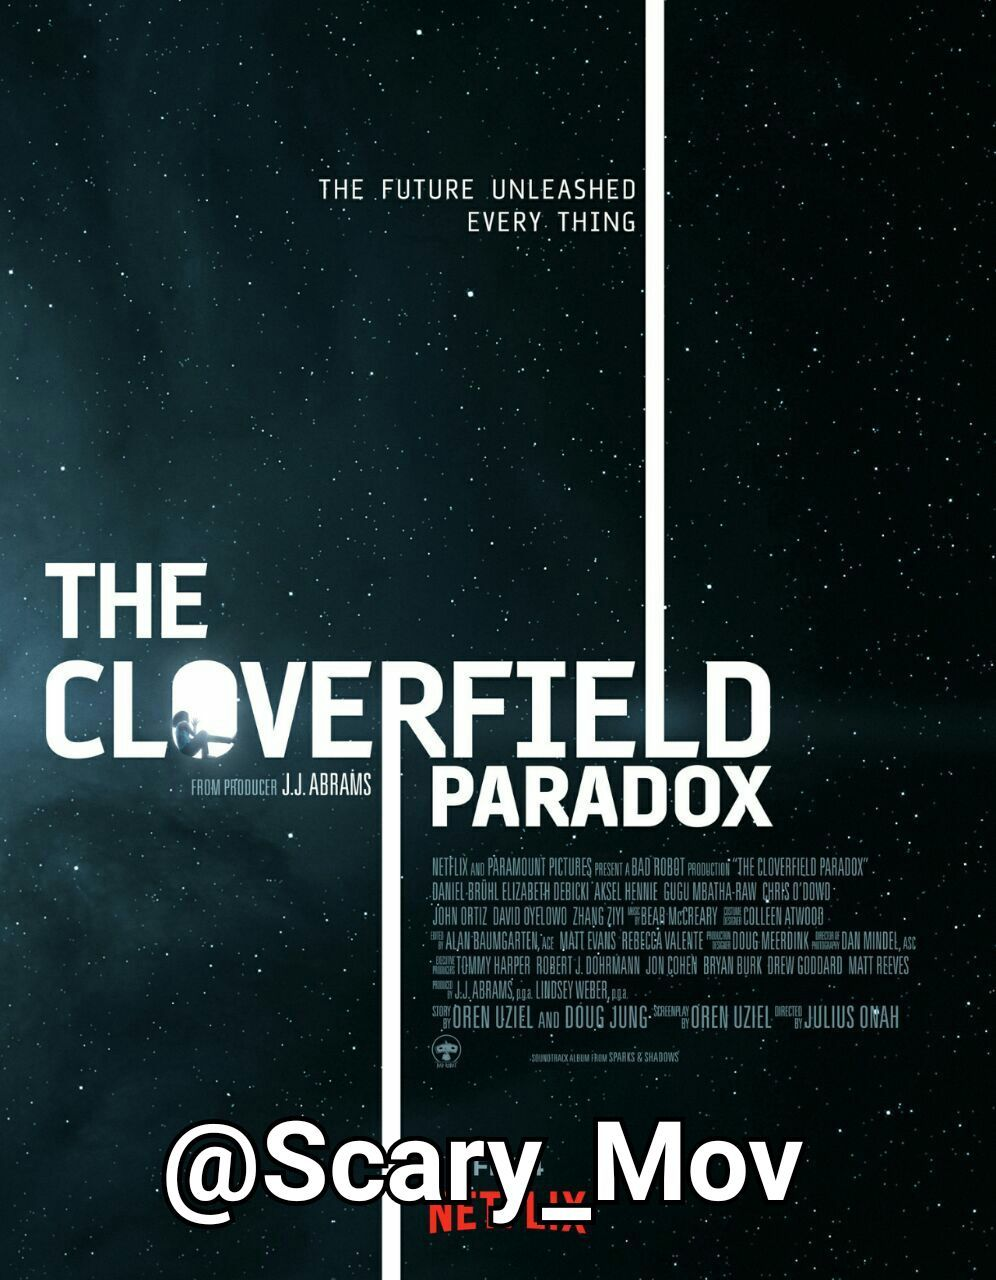 دانلود فیلم The Cloverfield Paradox 2018